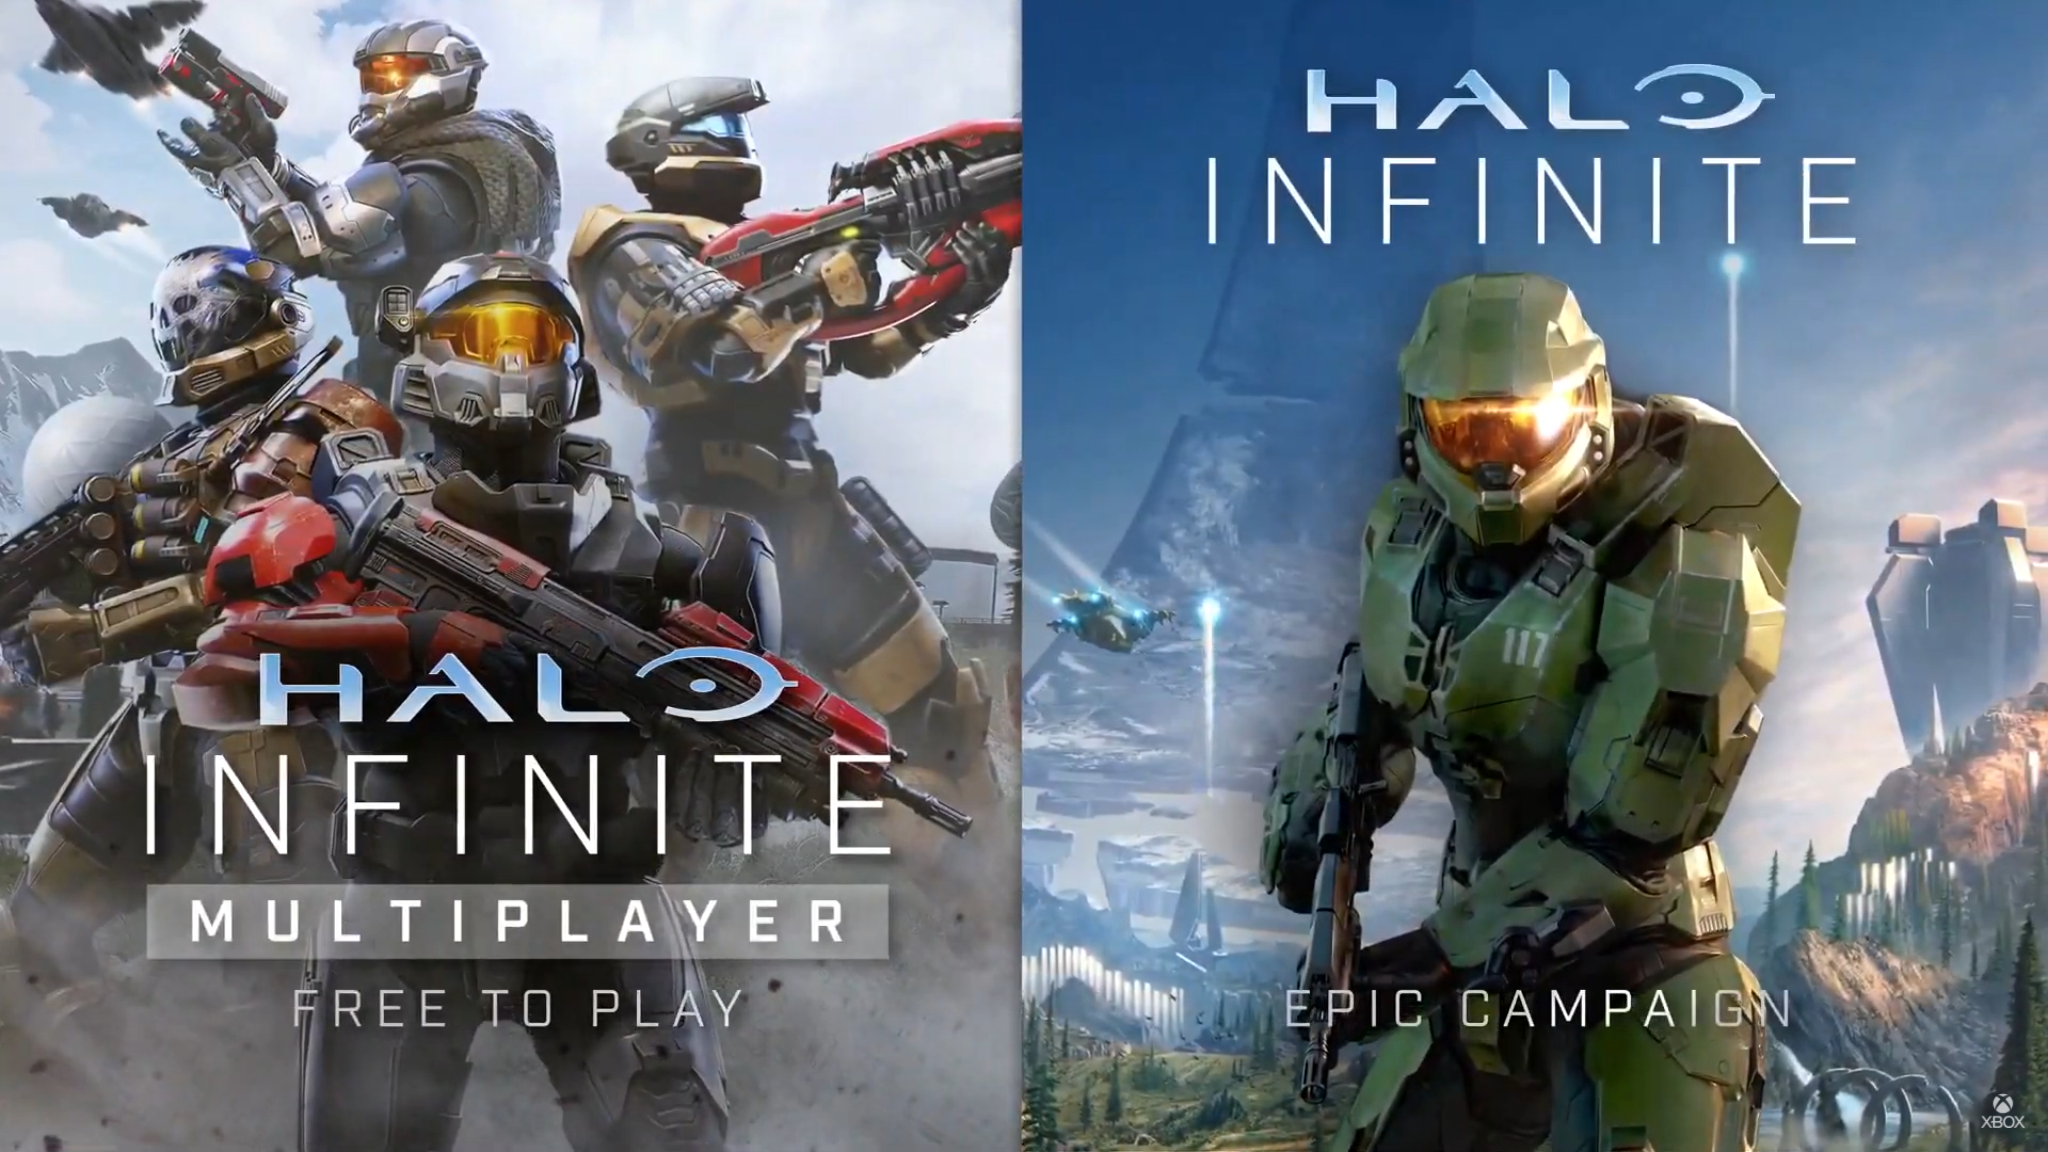 Halo Infinite at E3 — coming holiday 2021 with free multiplayer   Tom's  Guide